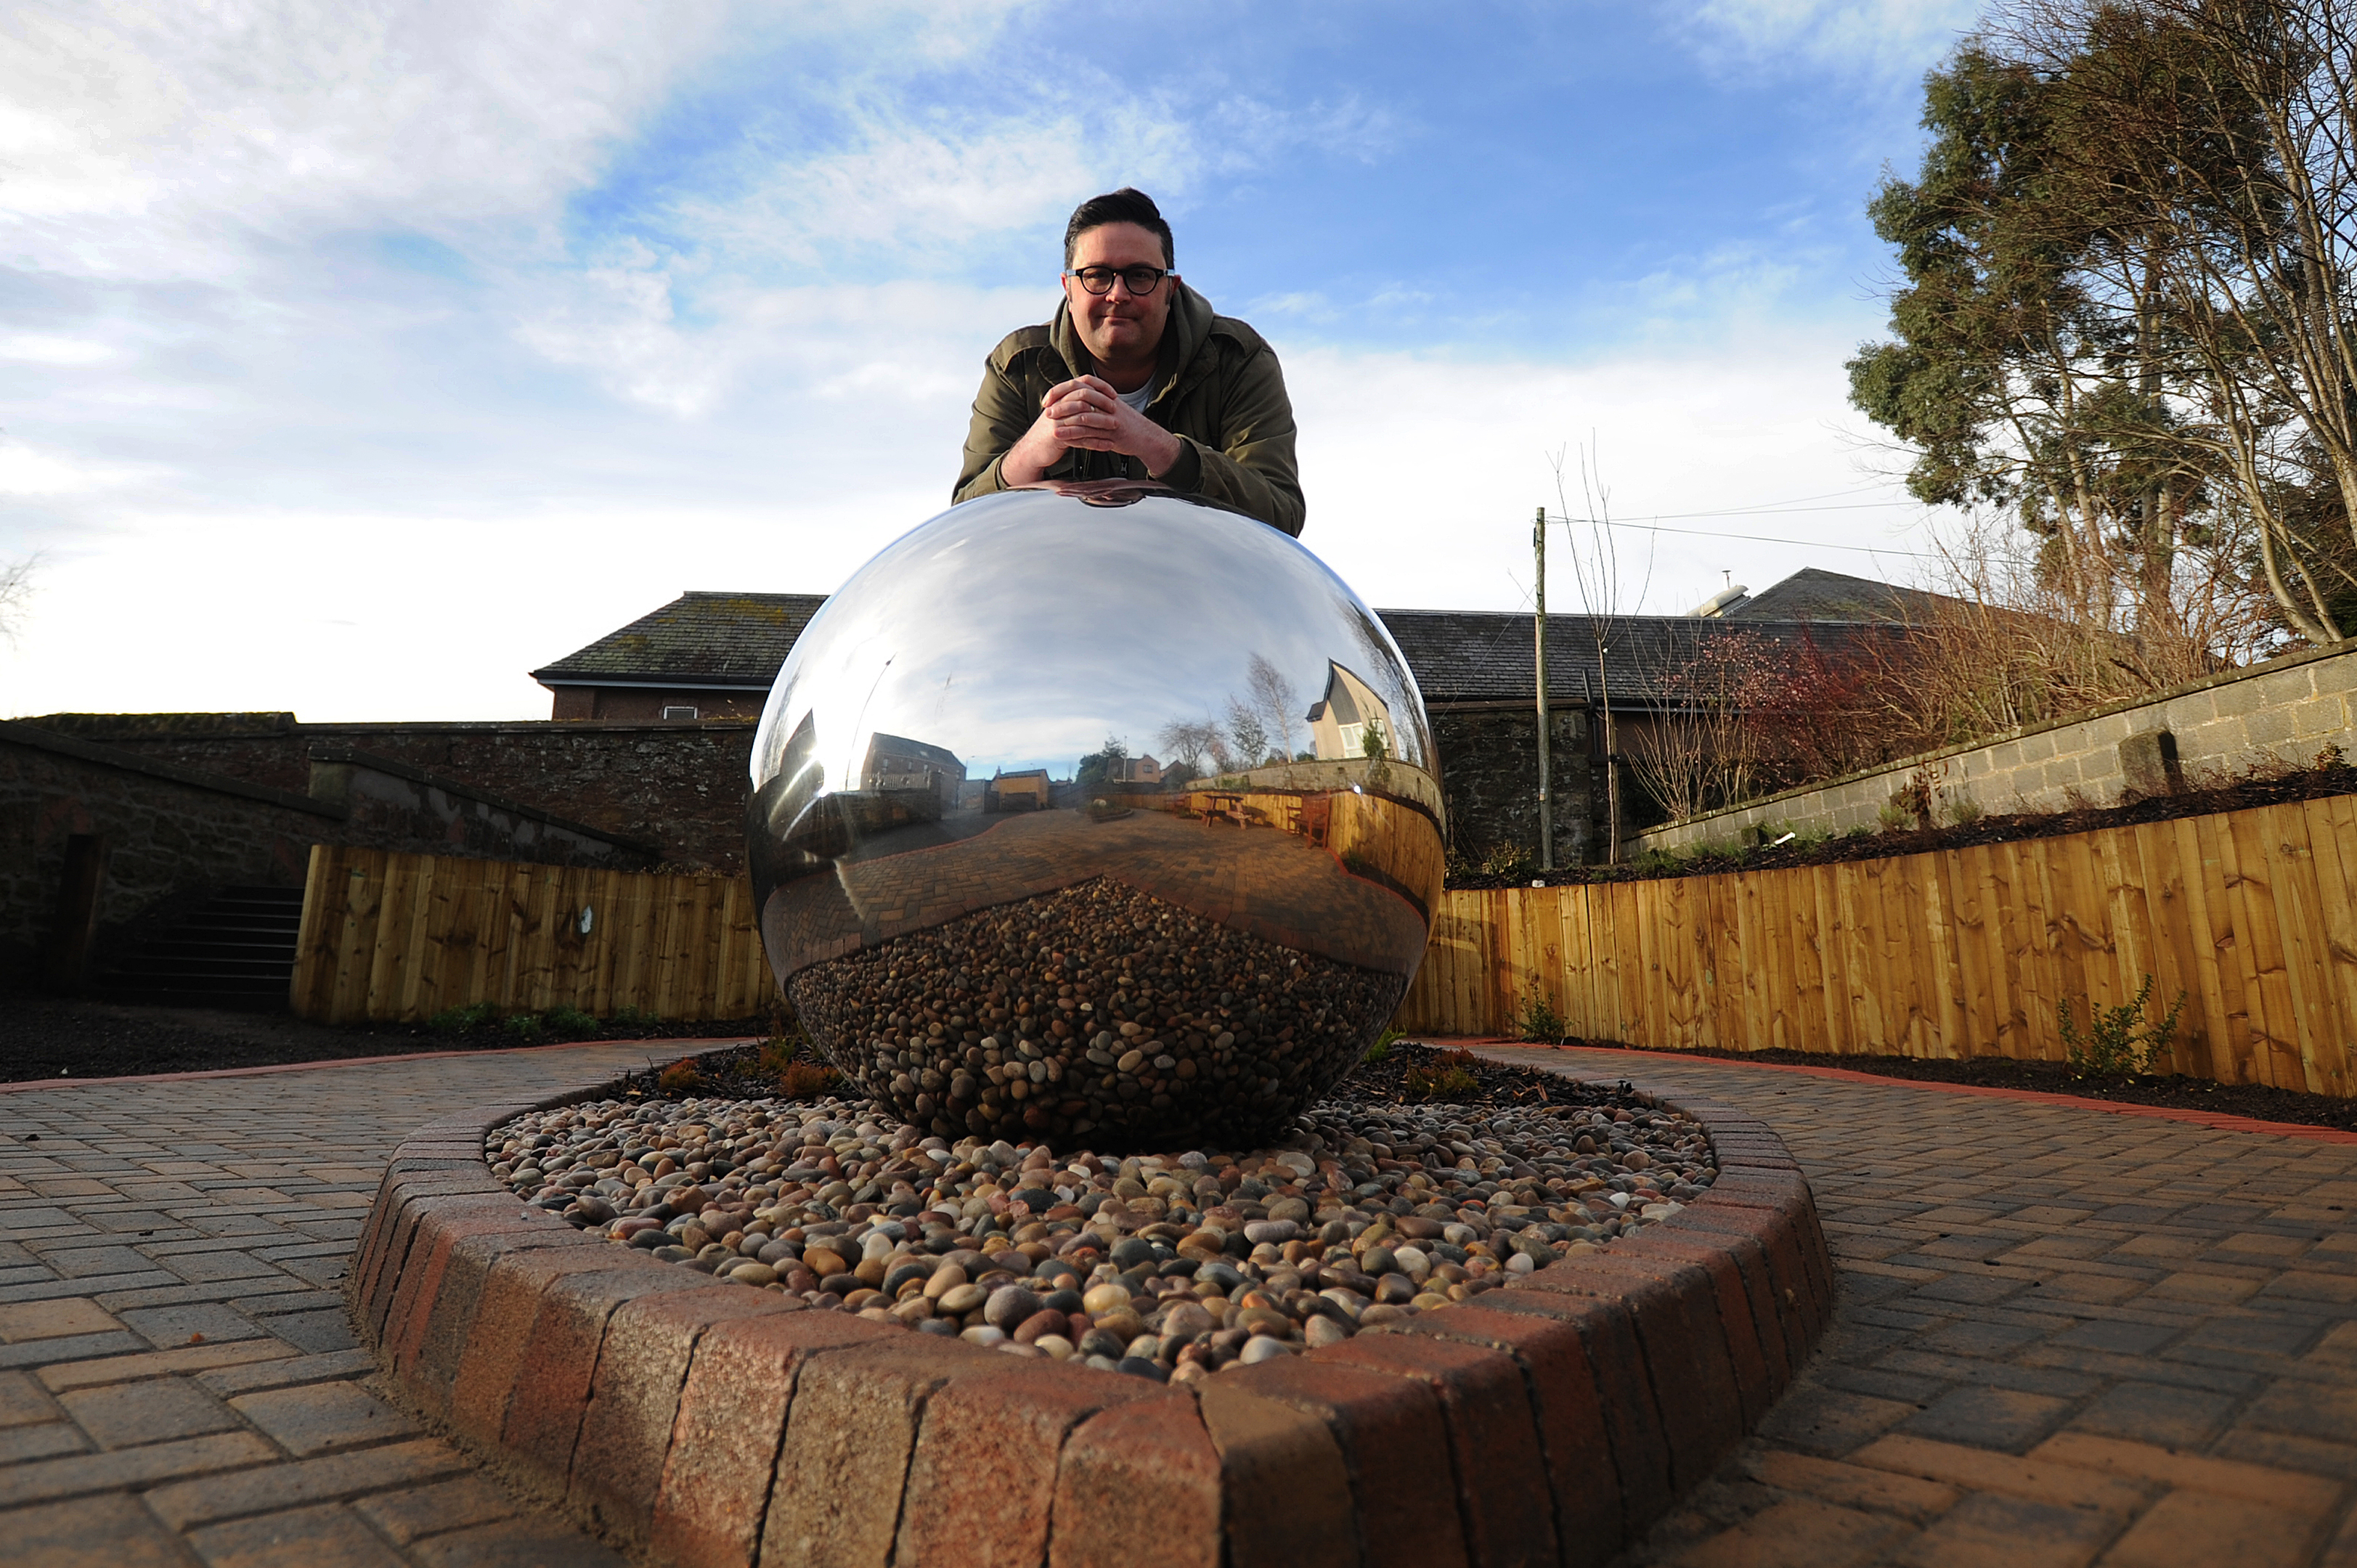 Graham Galloway in the Kirrie Connections dementia garden. opened last year